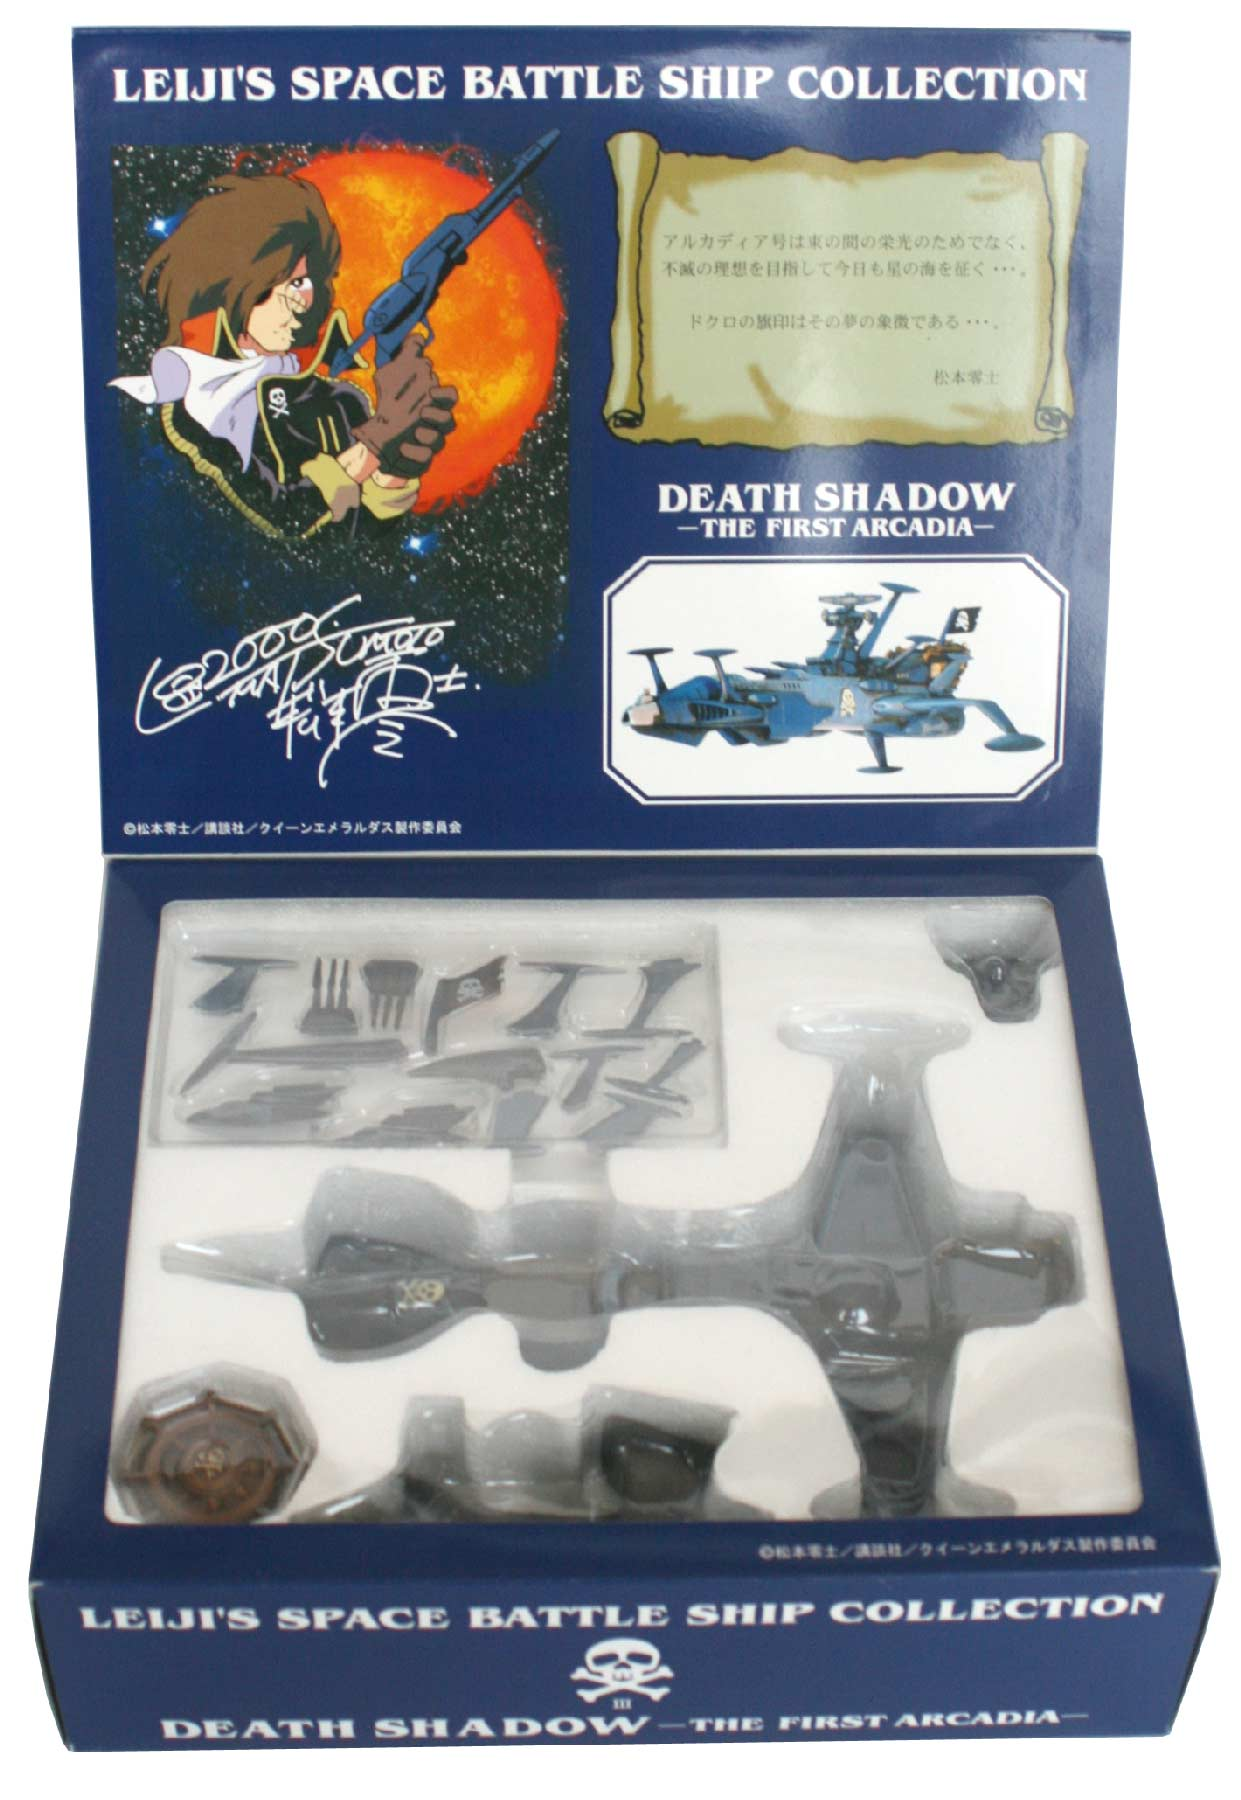 Packaging du Death Shadow de Mabell dans la collection Leiji&#039;s Space ship (jouet)